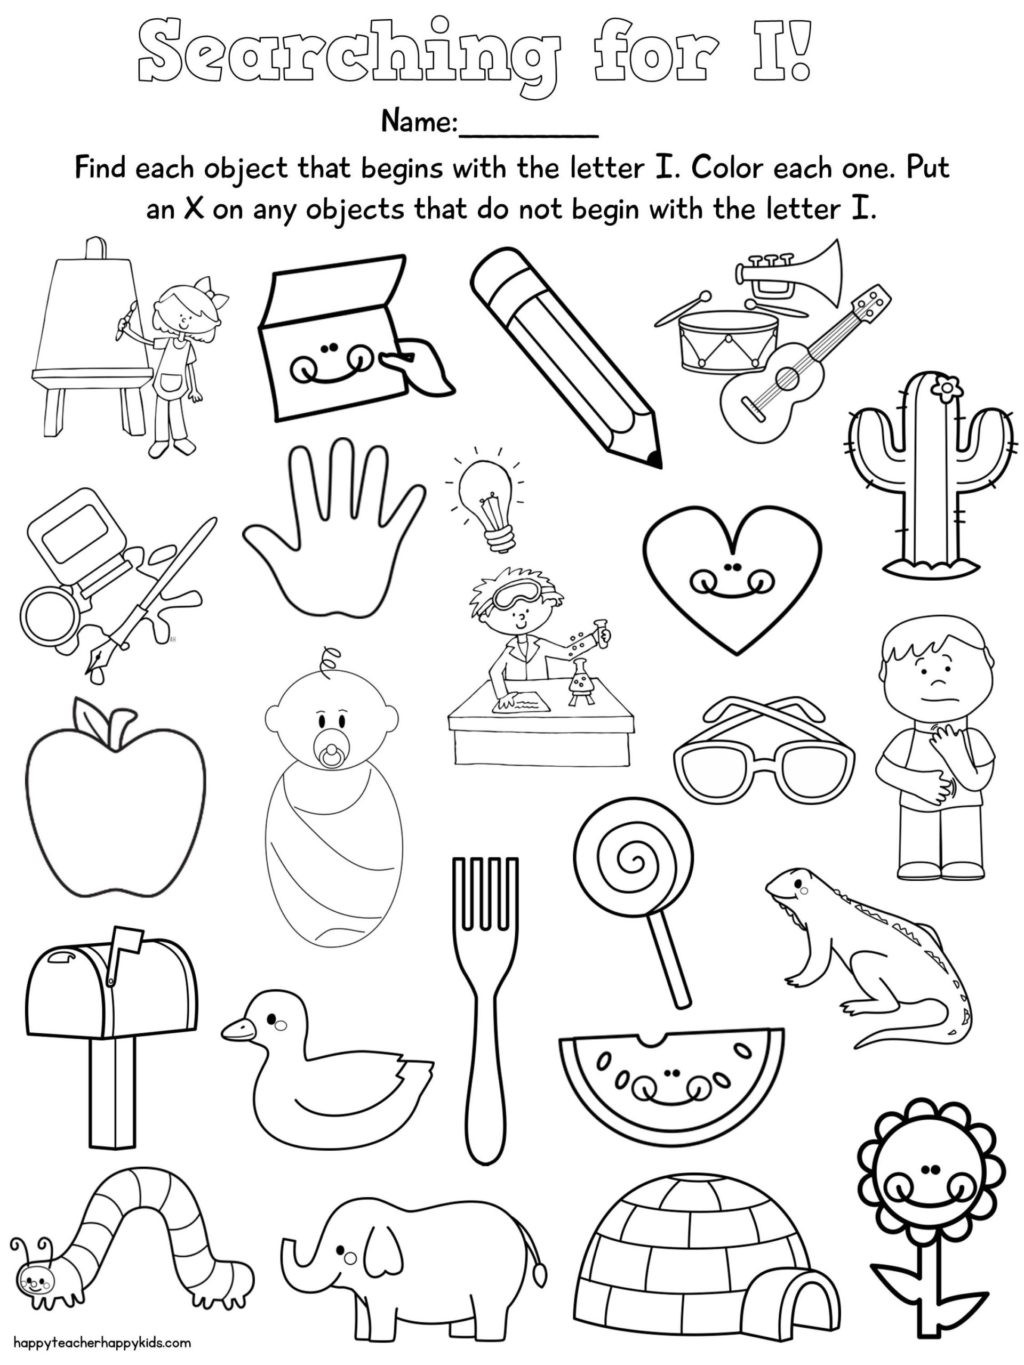 Middle School Art Worksheets Worksheet Free Printable Fourth Grade Language Arts